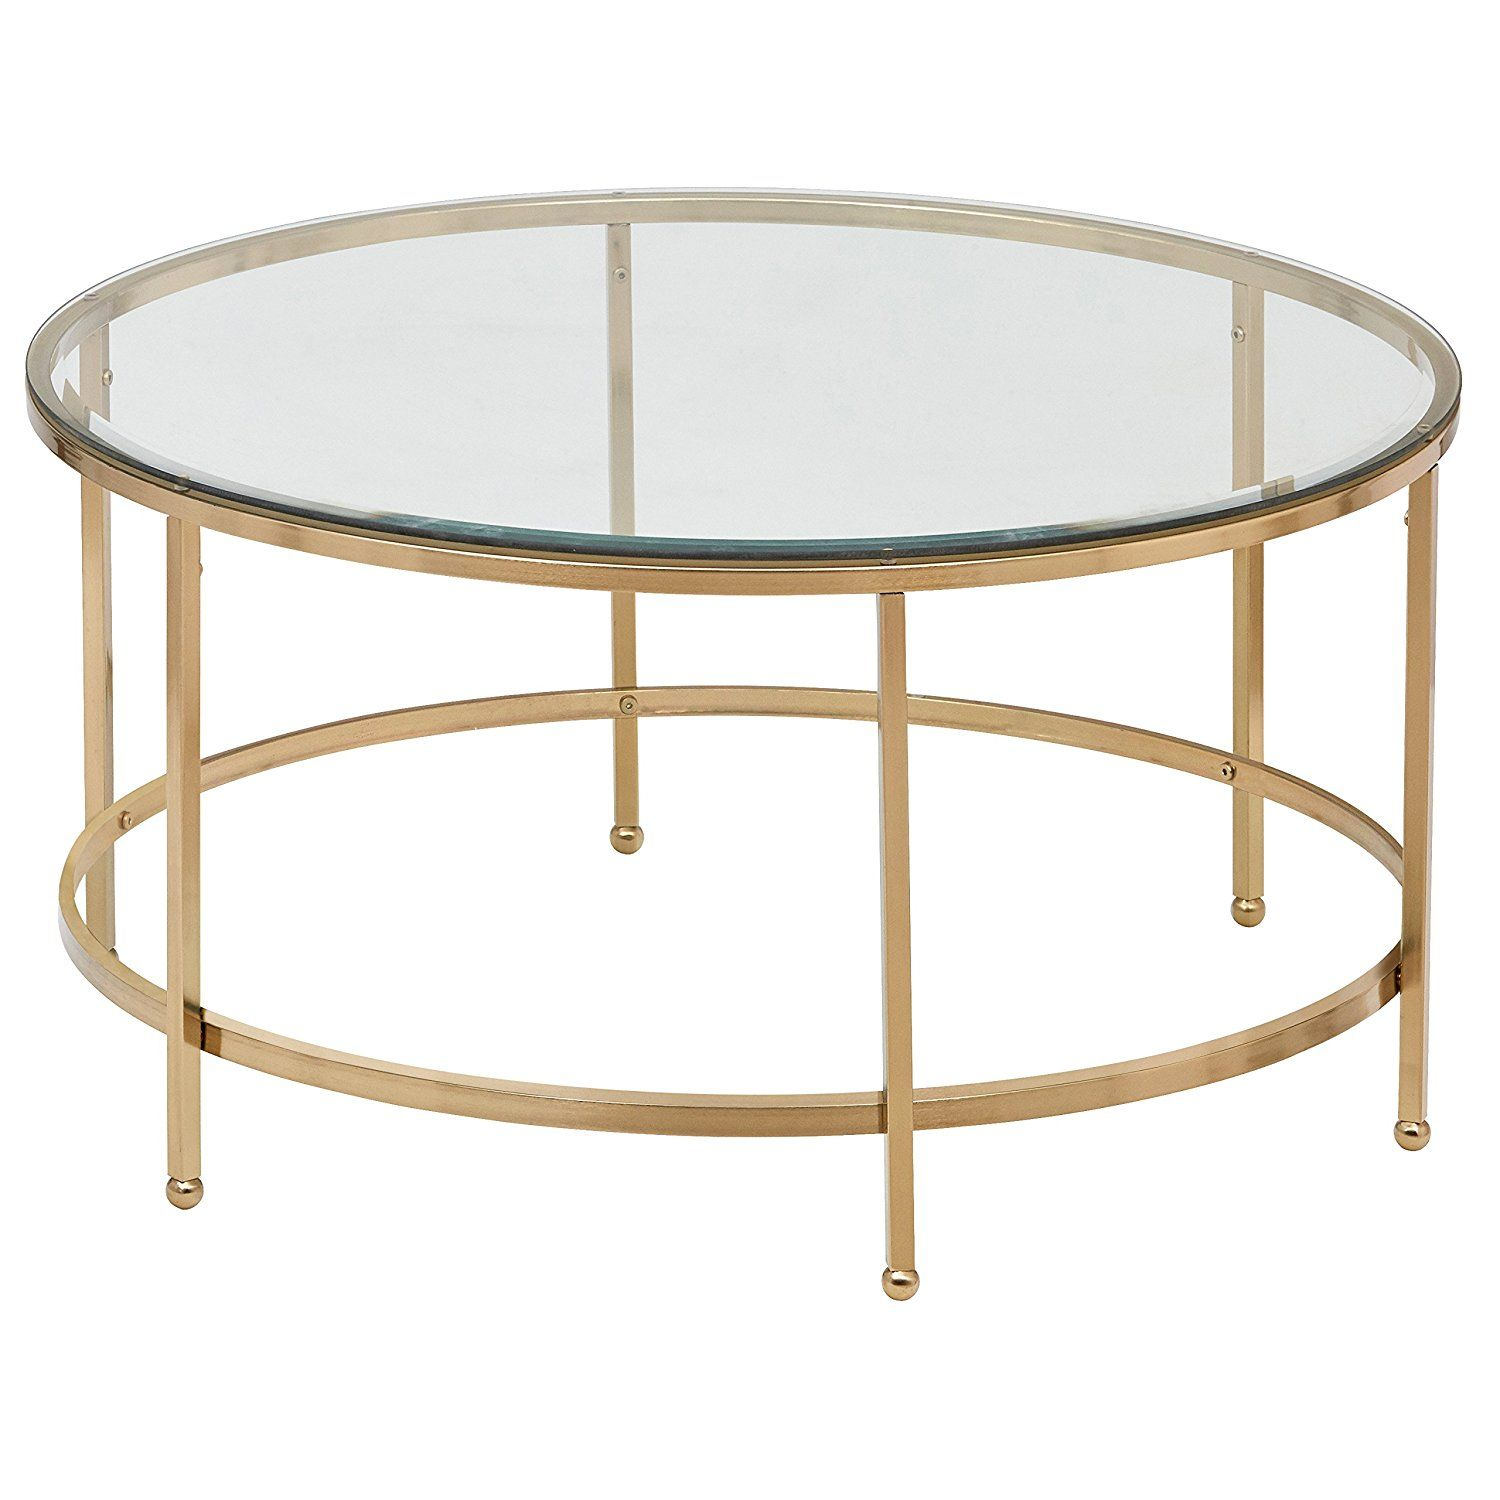 Rivet modern glass and gold coffee table 36w gold finish kitchen dining